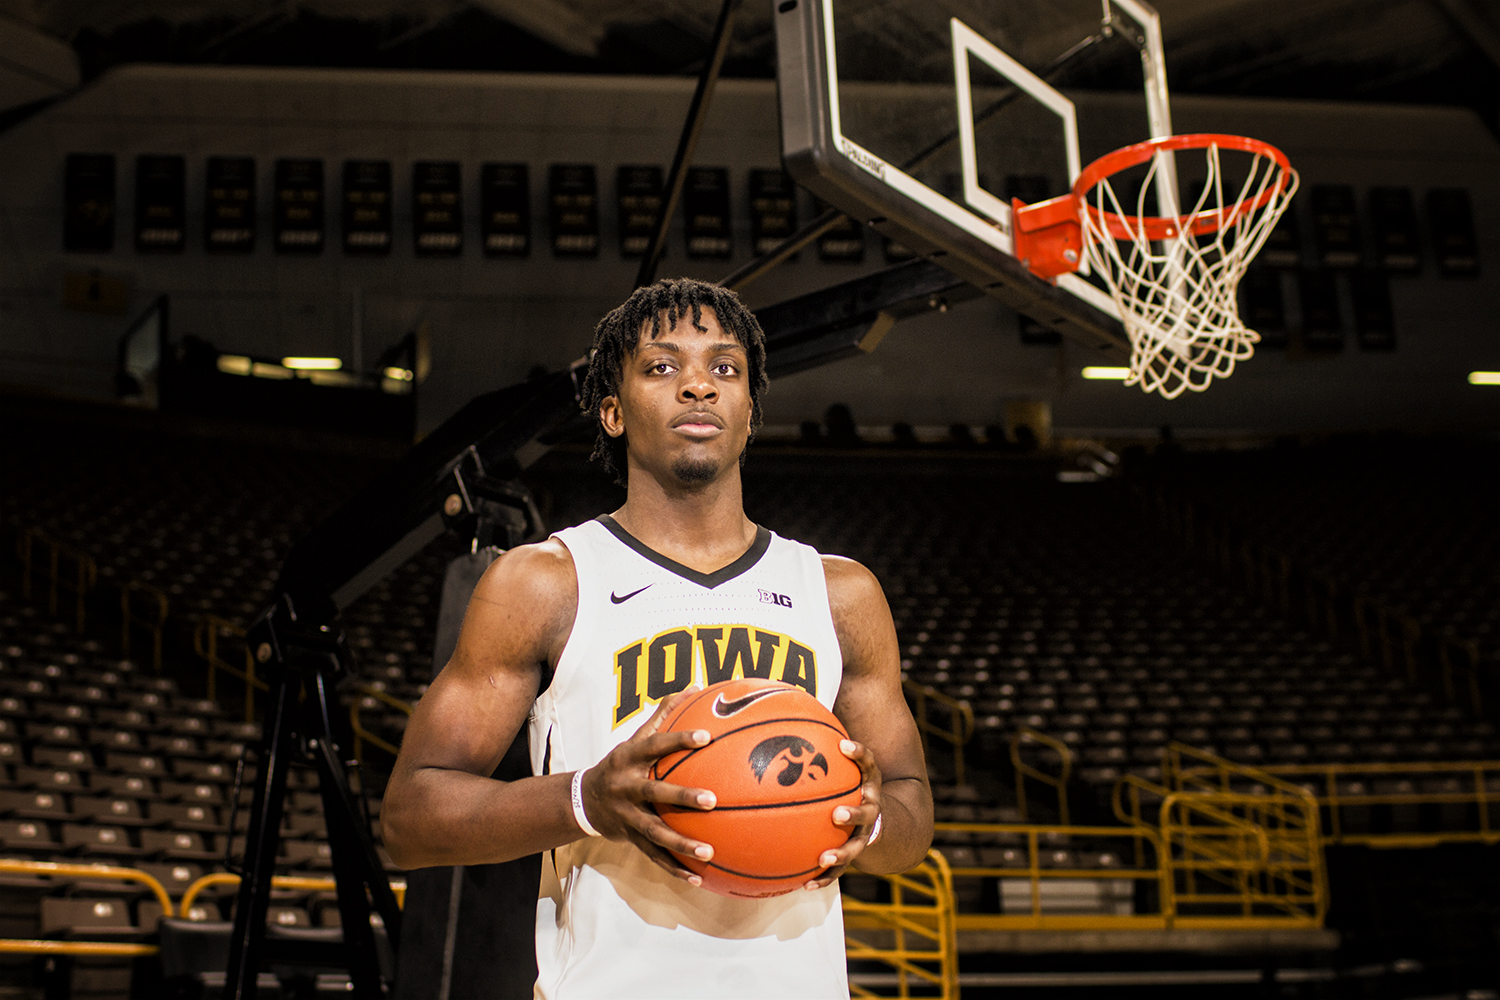 Iowa forward Tyler Cook poses for a portrait during Iowa men's basketball Media Day at Carver-Hawkeye Arena on Monday, Oct. 8, 2018. The team's first game will be against Guilford College on Nov. 4.